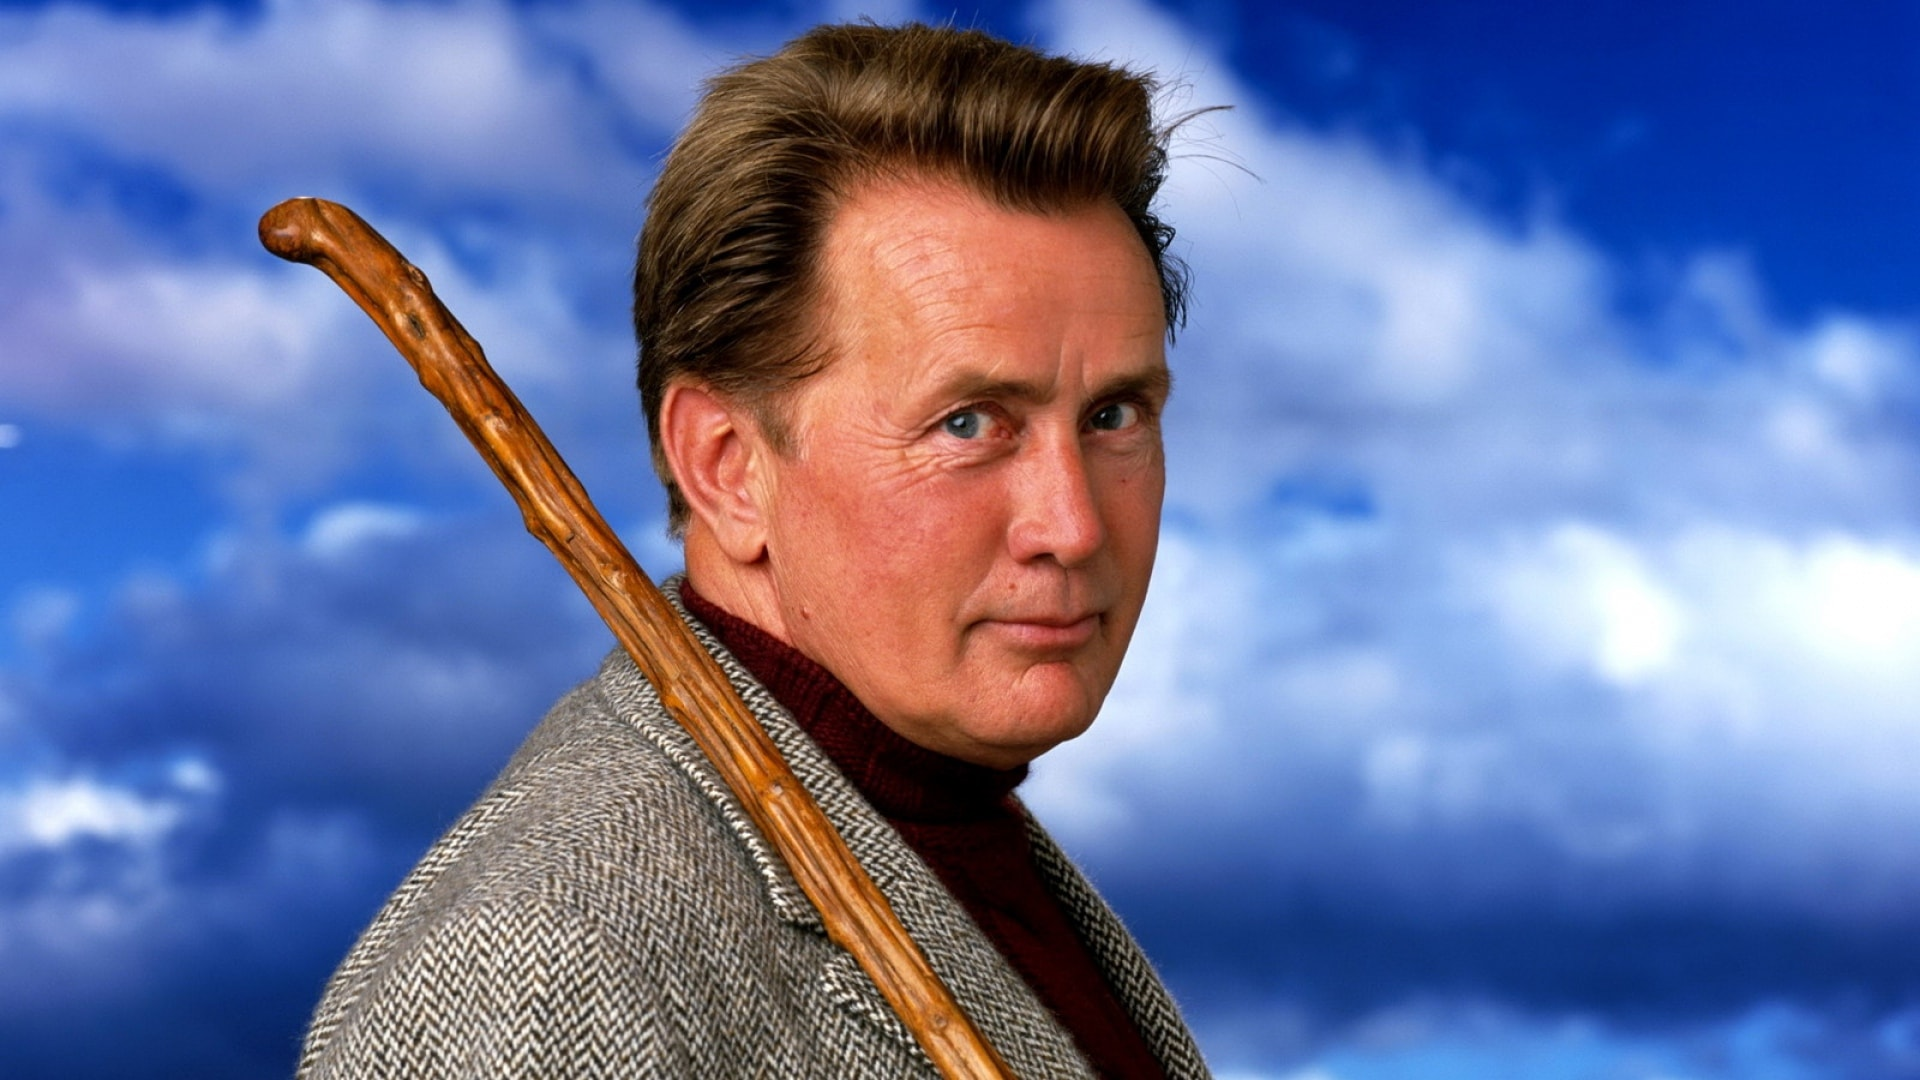 Martin Sheen Pictures